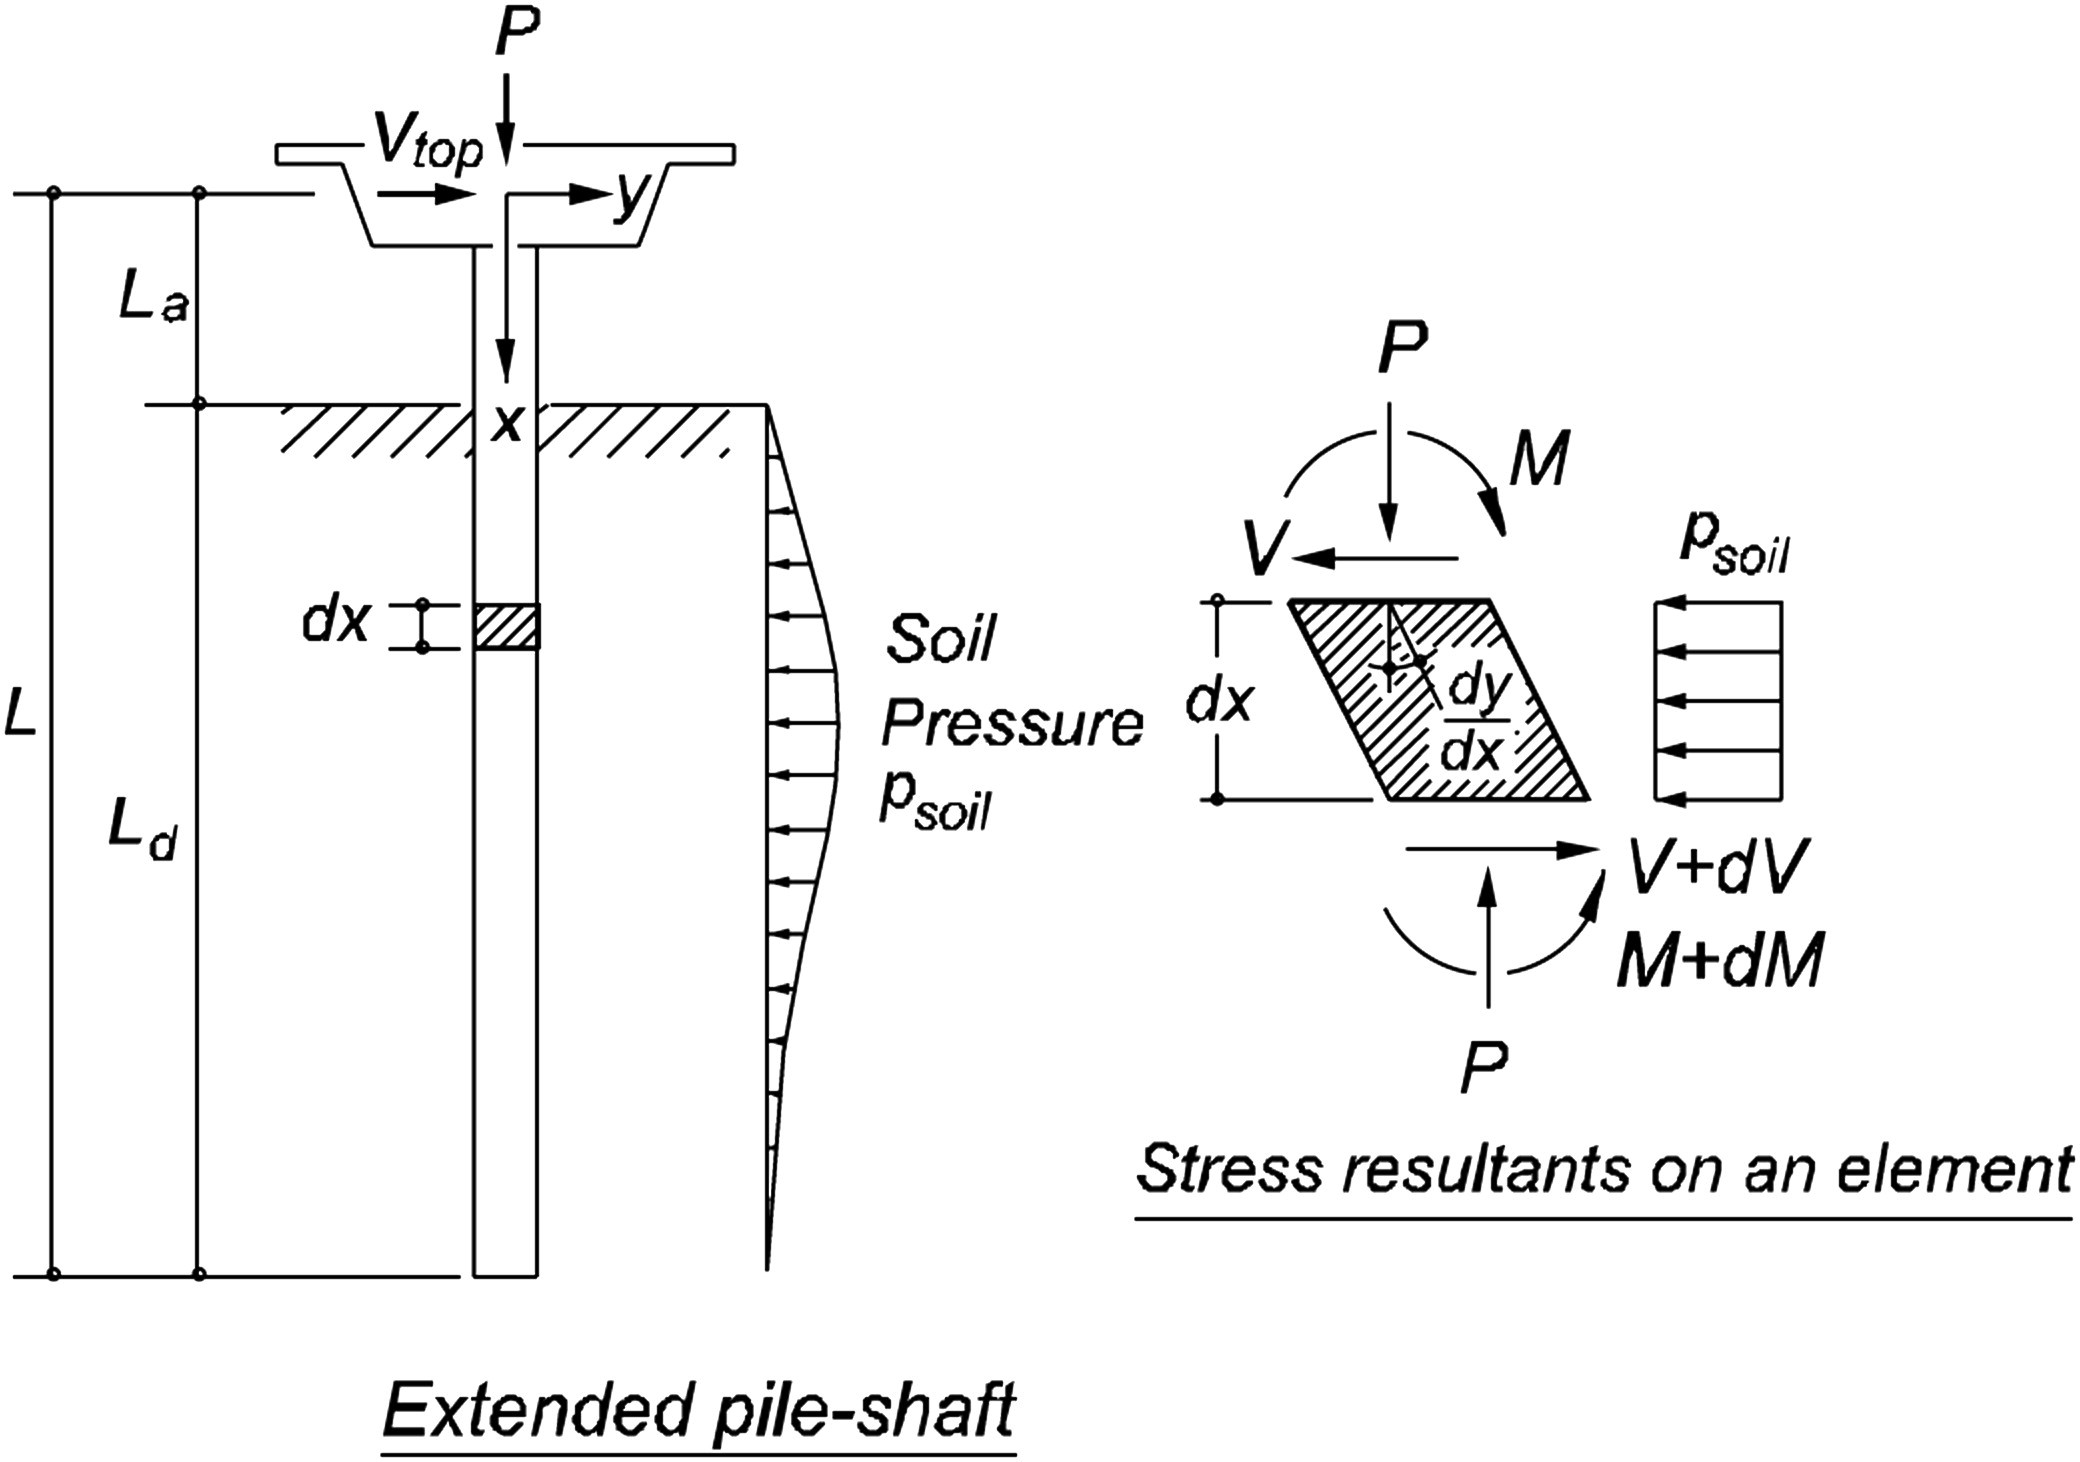 V Diagram Systems Engineering Inelastic Deformation Of Extended Pile Shafts Of V Diagram Systems Engineering